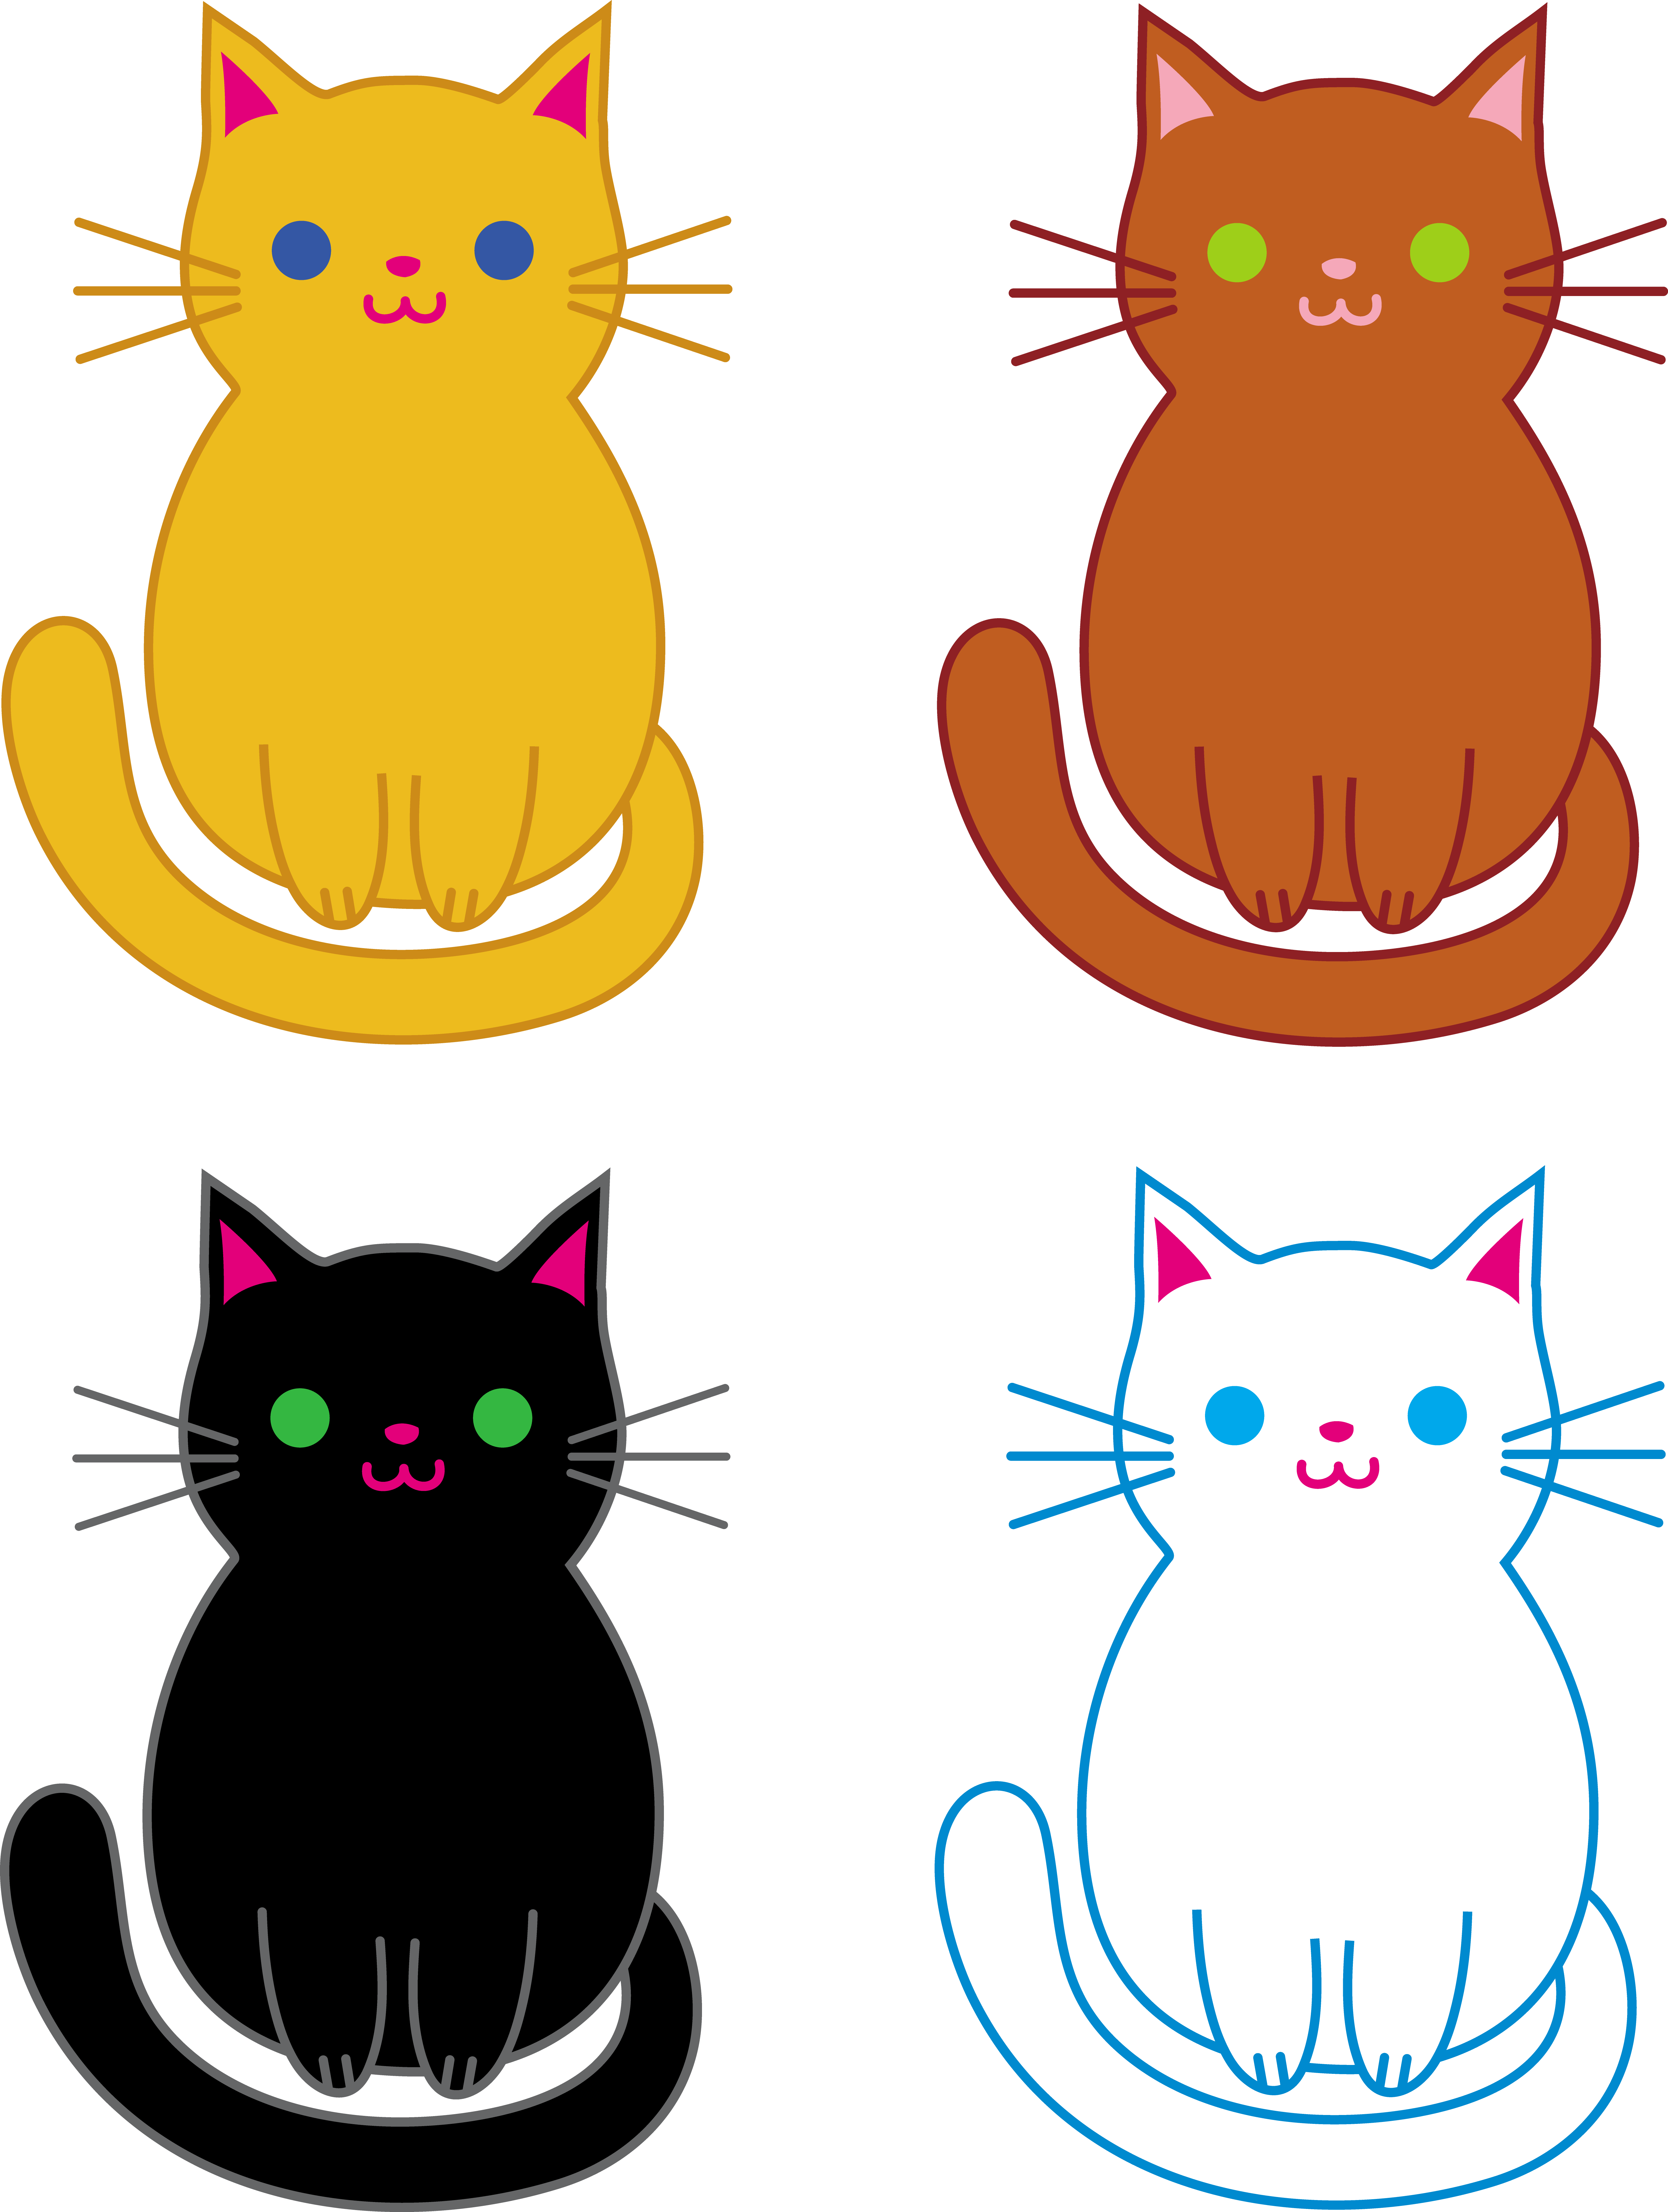 Three little clipart little kittens. Free clip art of